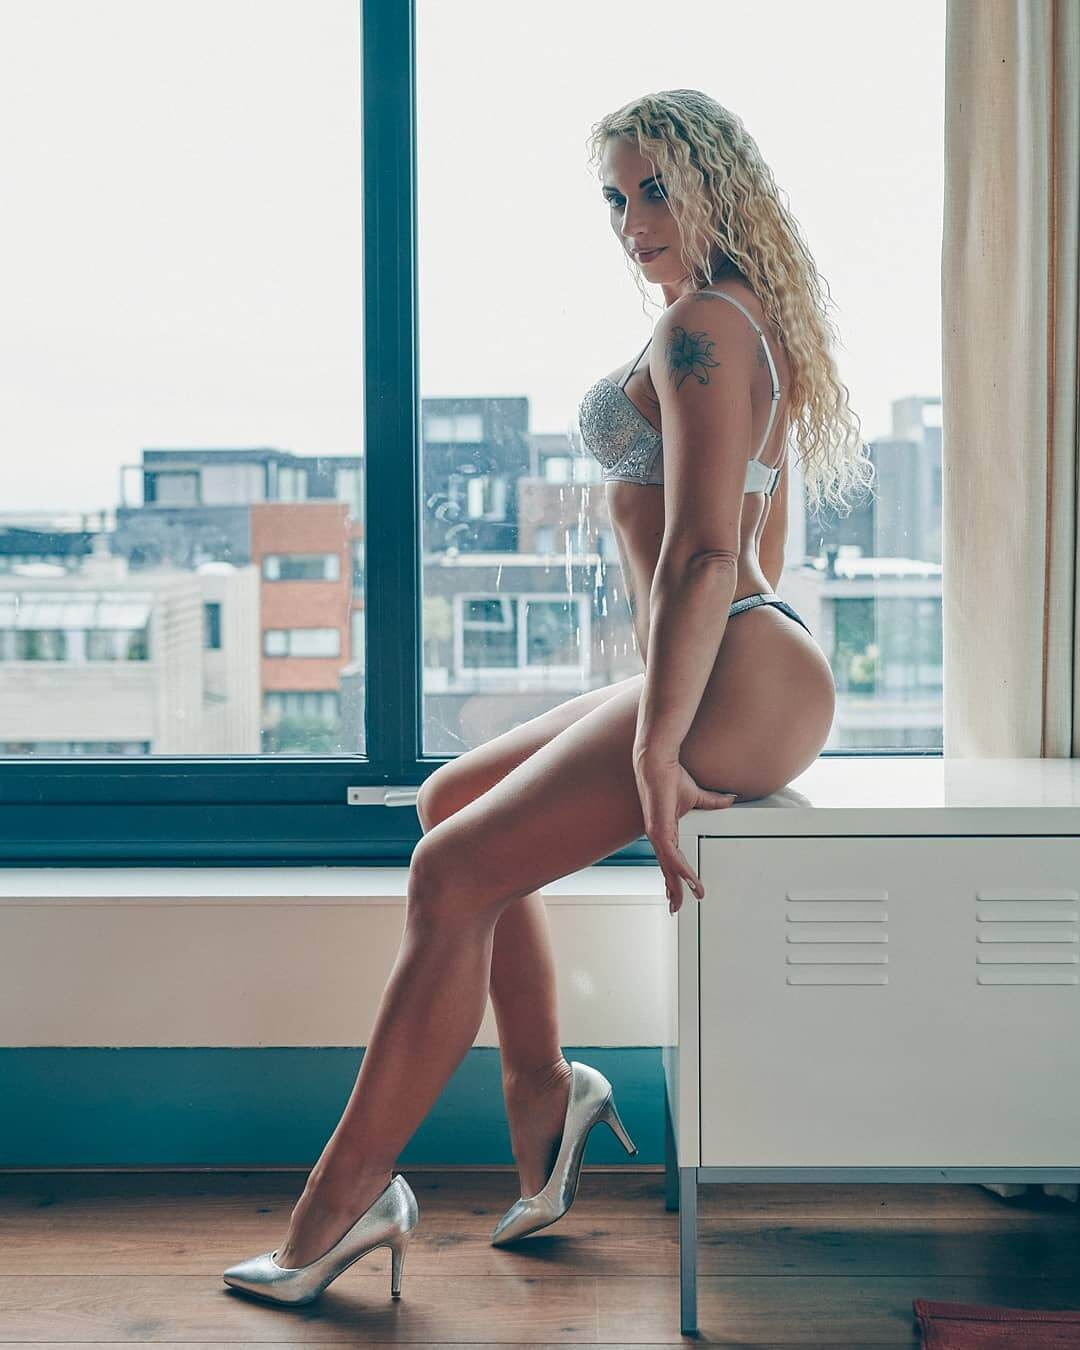 Beautiful blonde Dutch over 30 fit model Willeke Bartels @willekebartels.fitmodel sitting by the window showing her hot tanned body and long sexy legs wearing silver lingerie and high heels in a boudoir photo session